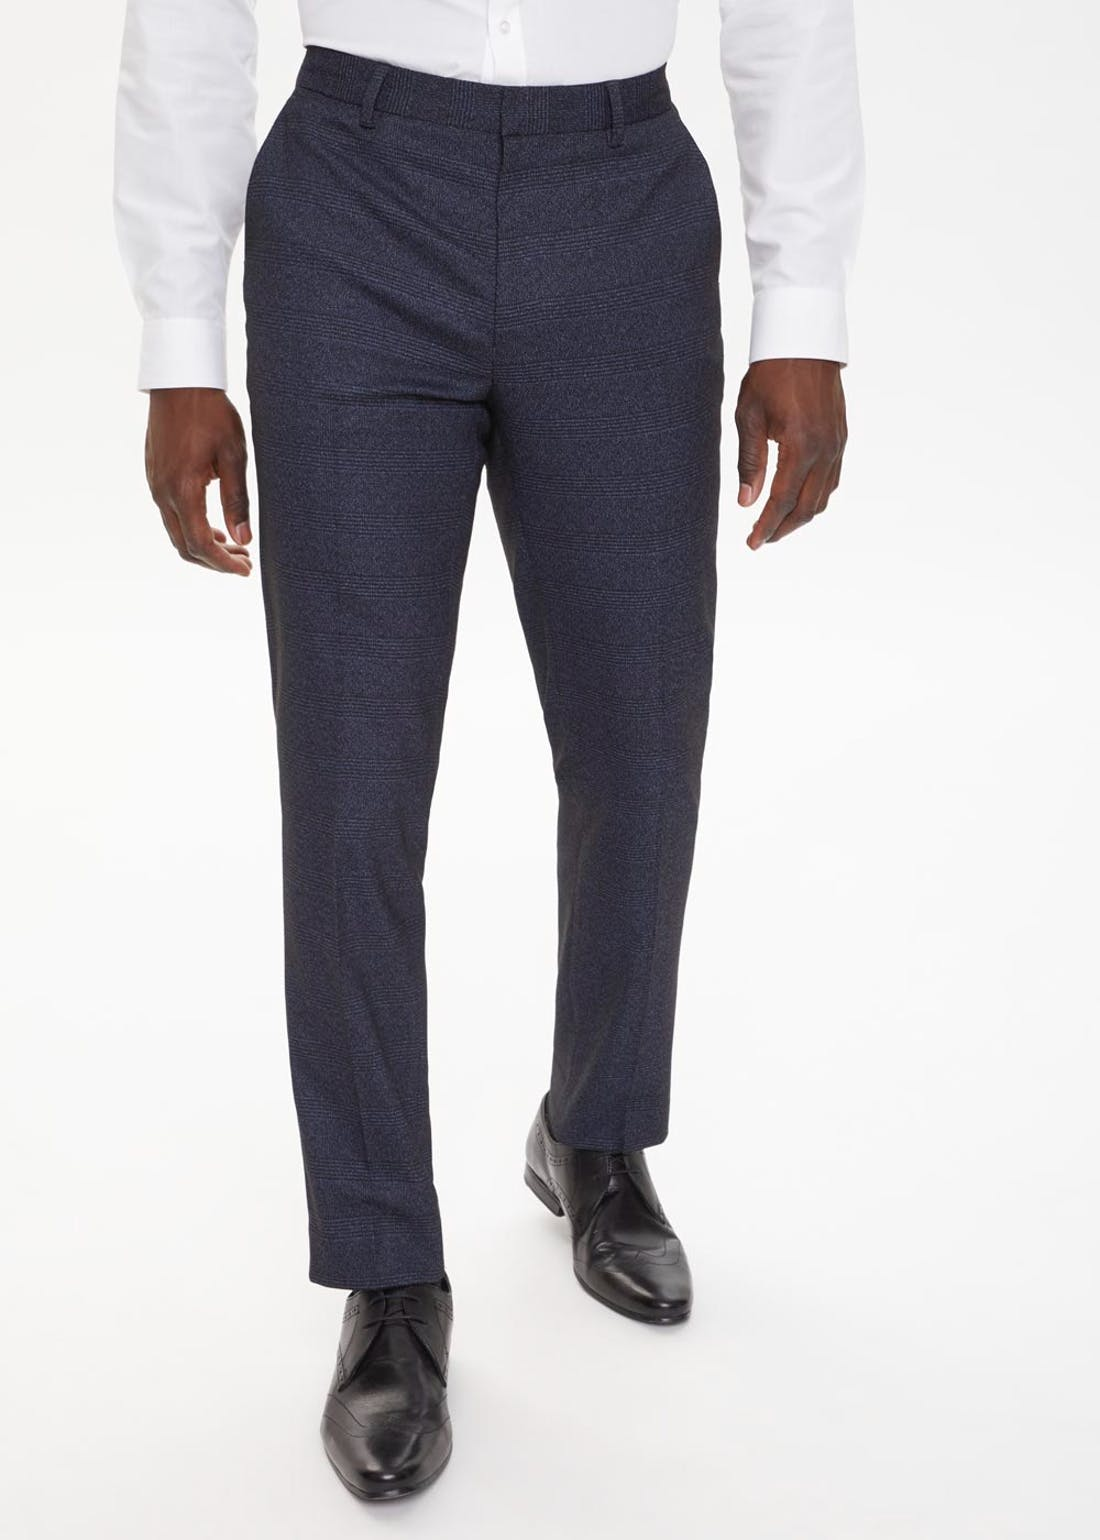 Taylor & Wright Dale Slim Fit Trousers